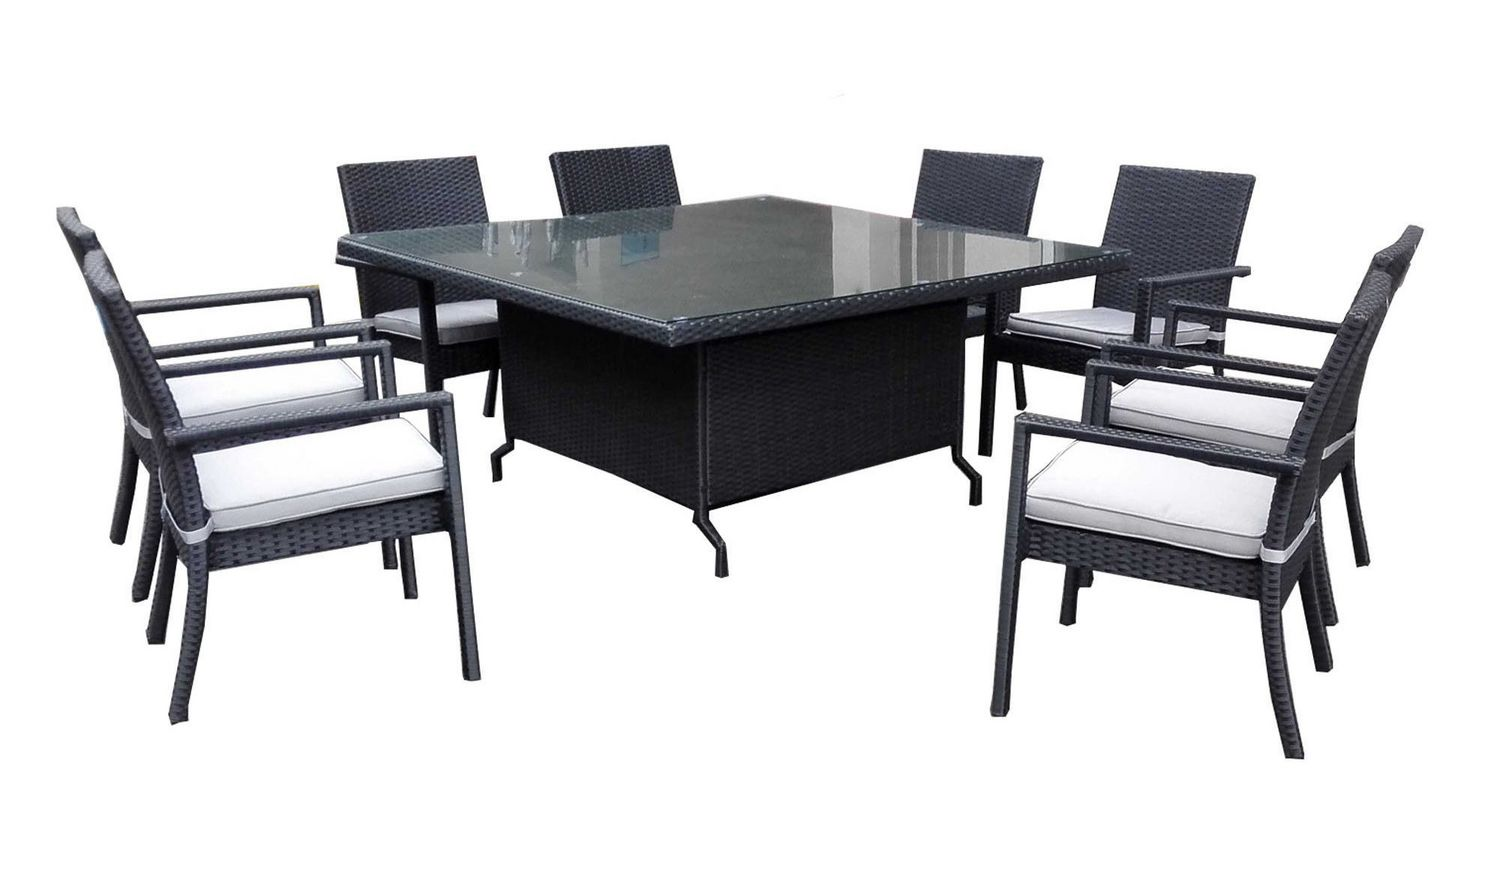 Henryka 9 Piece Dining Patio Set With Cushions   Black | Walmart Canada